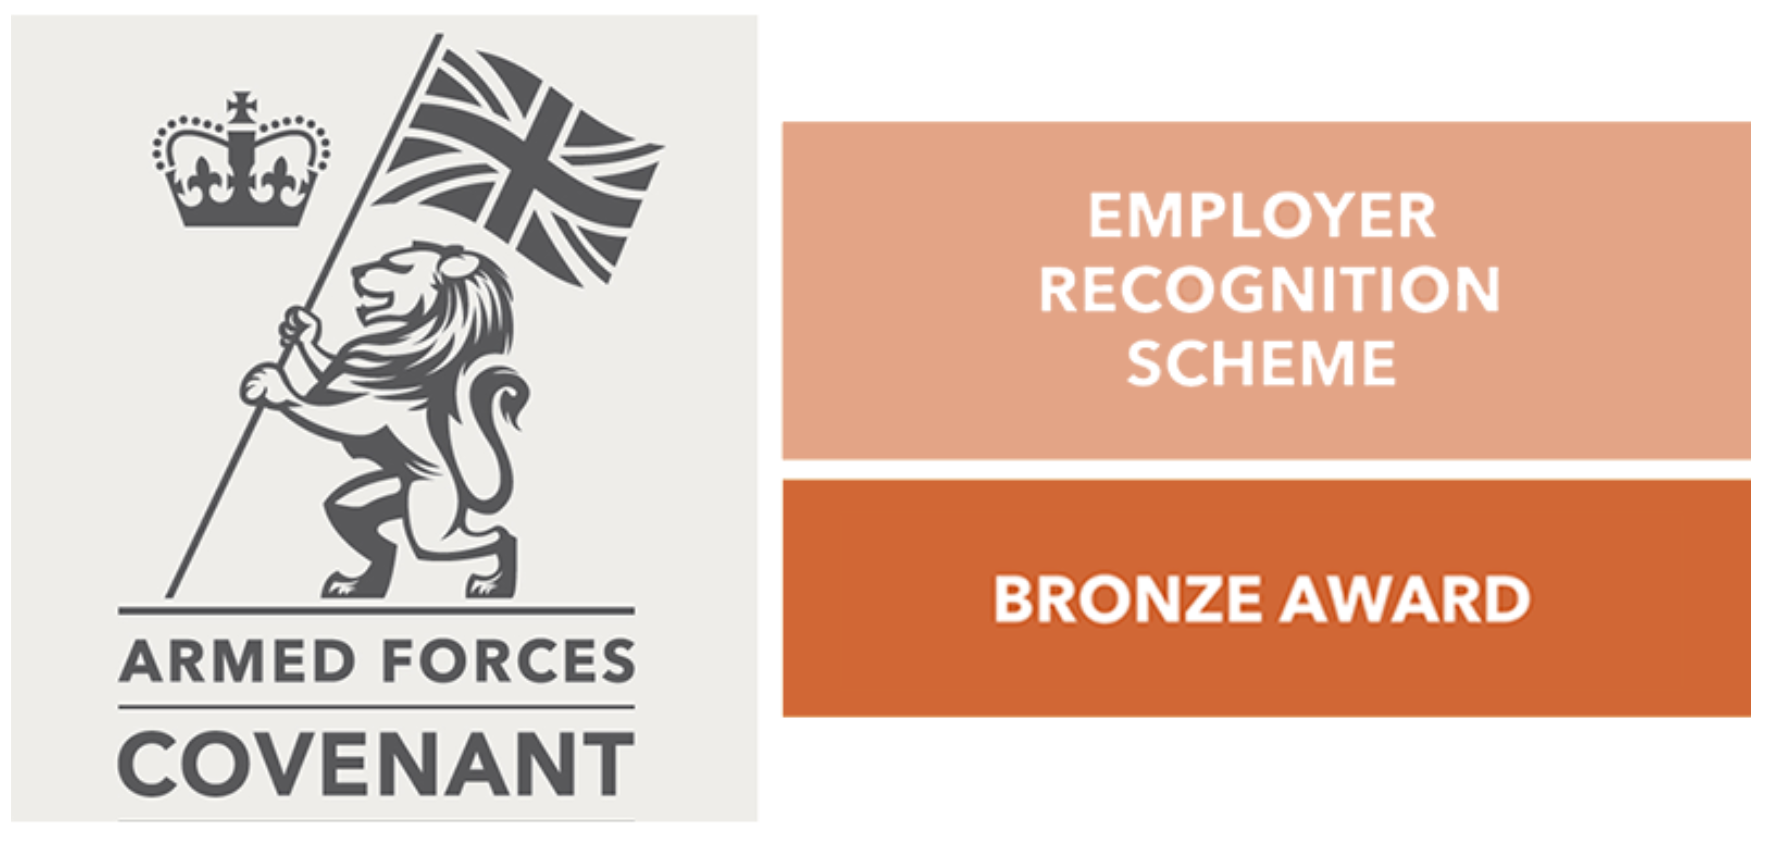 Armed forces covenent bronze